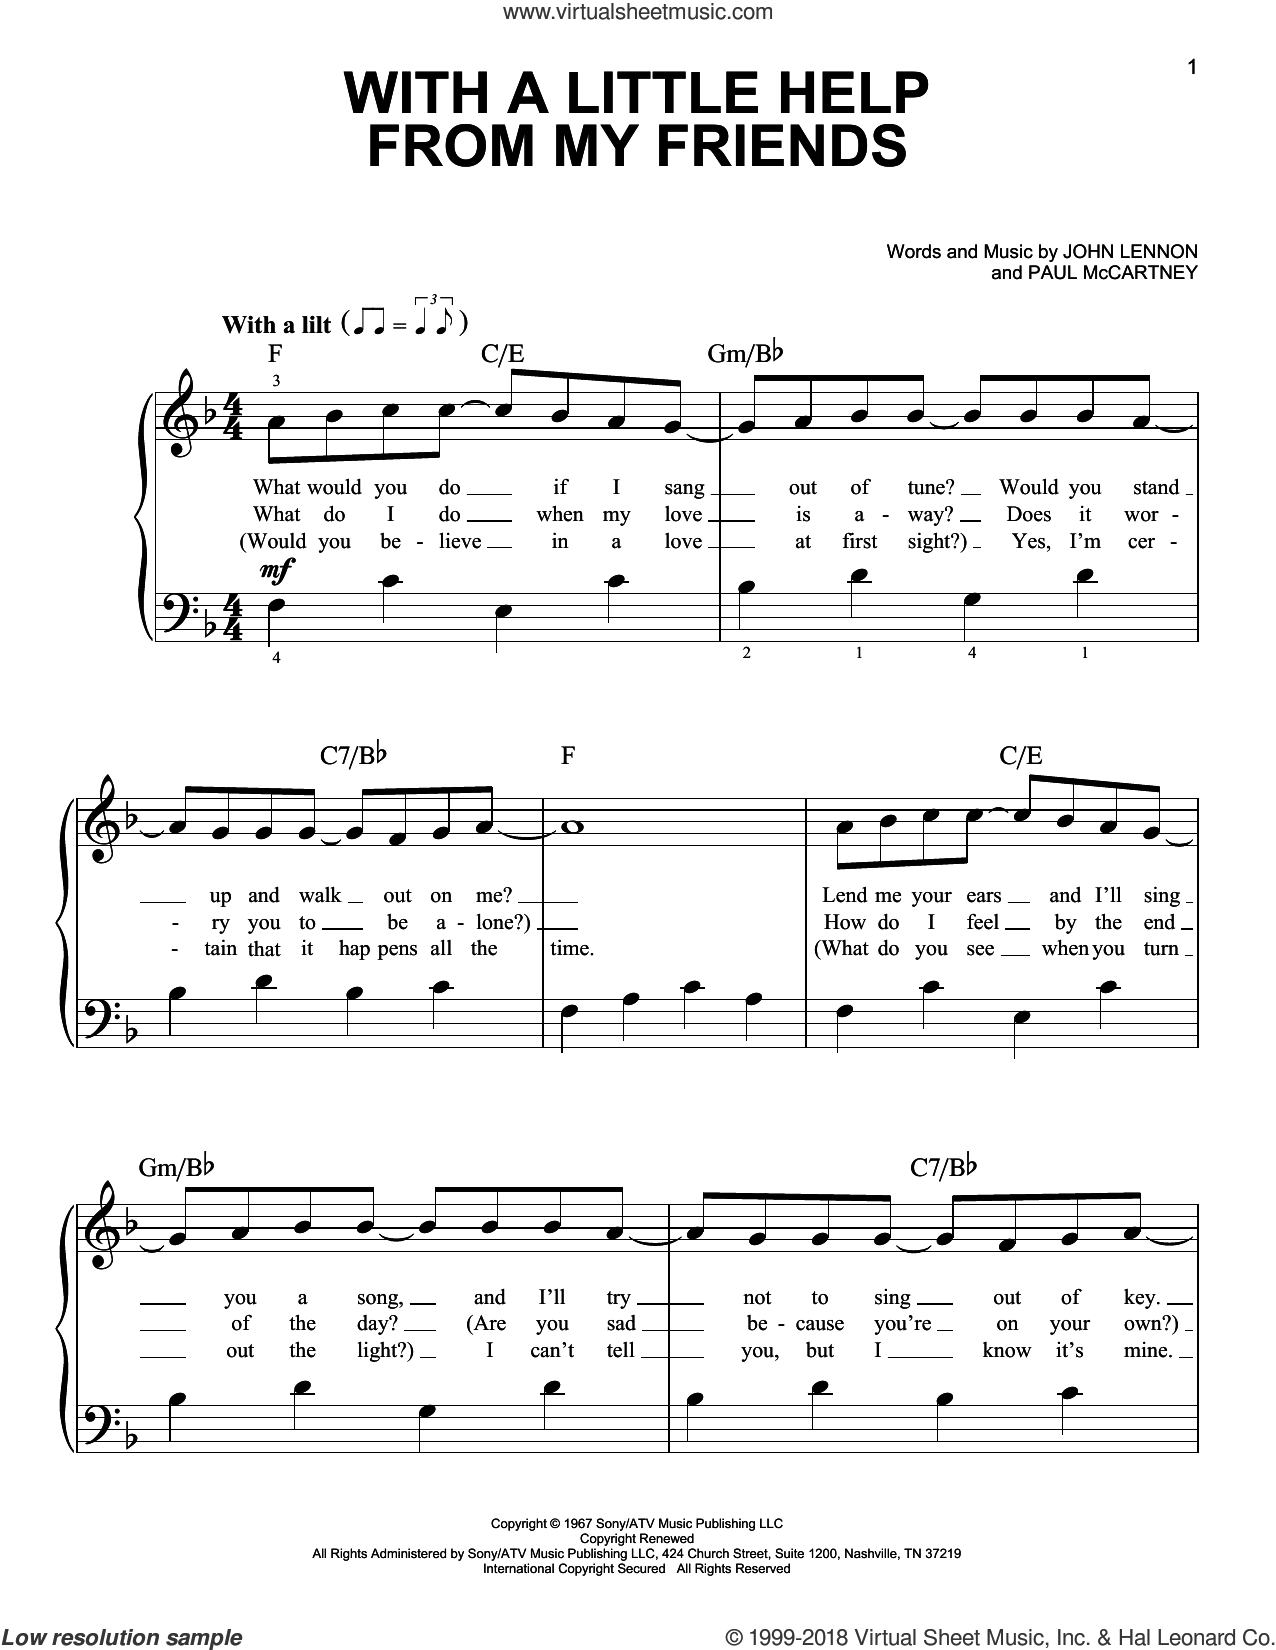 With A Little Help From My Friends sheet music for piano solo by Paul McCartney, Joe Cocker, The Beatles and John Lennon. Score Image Preview.